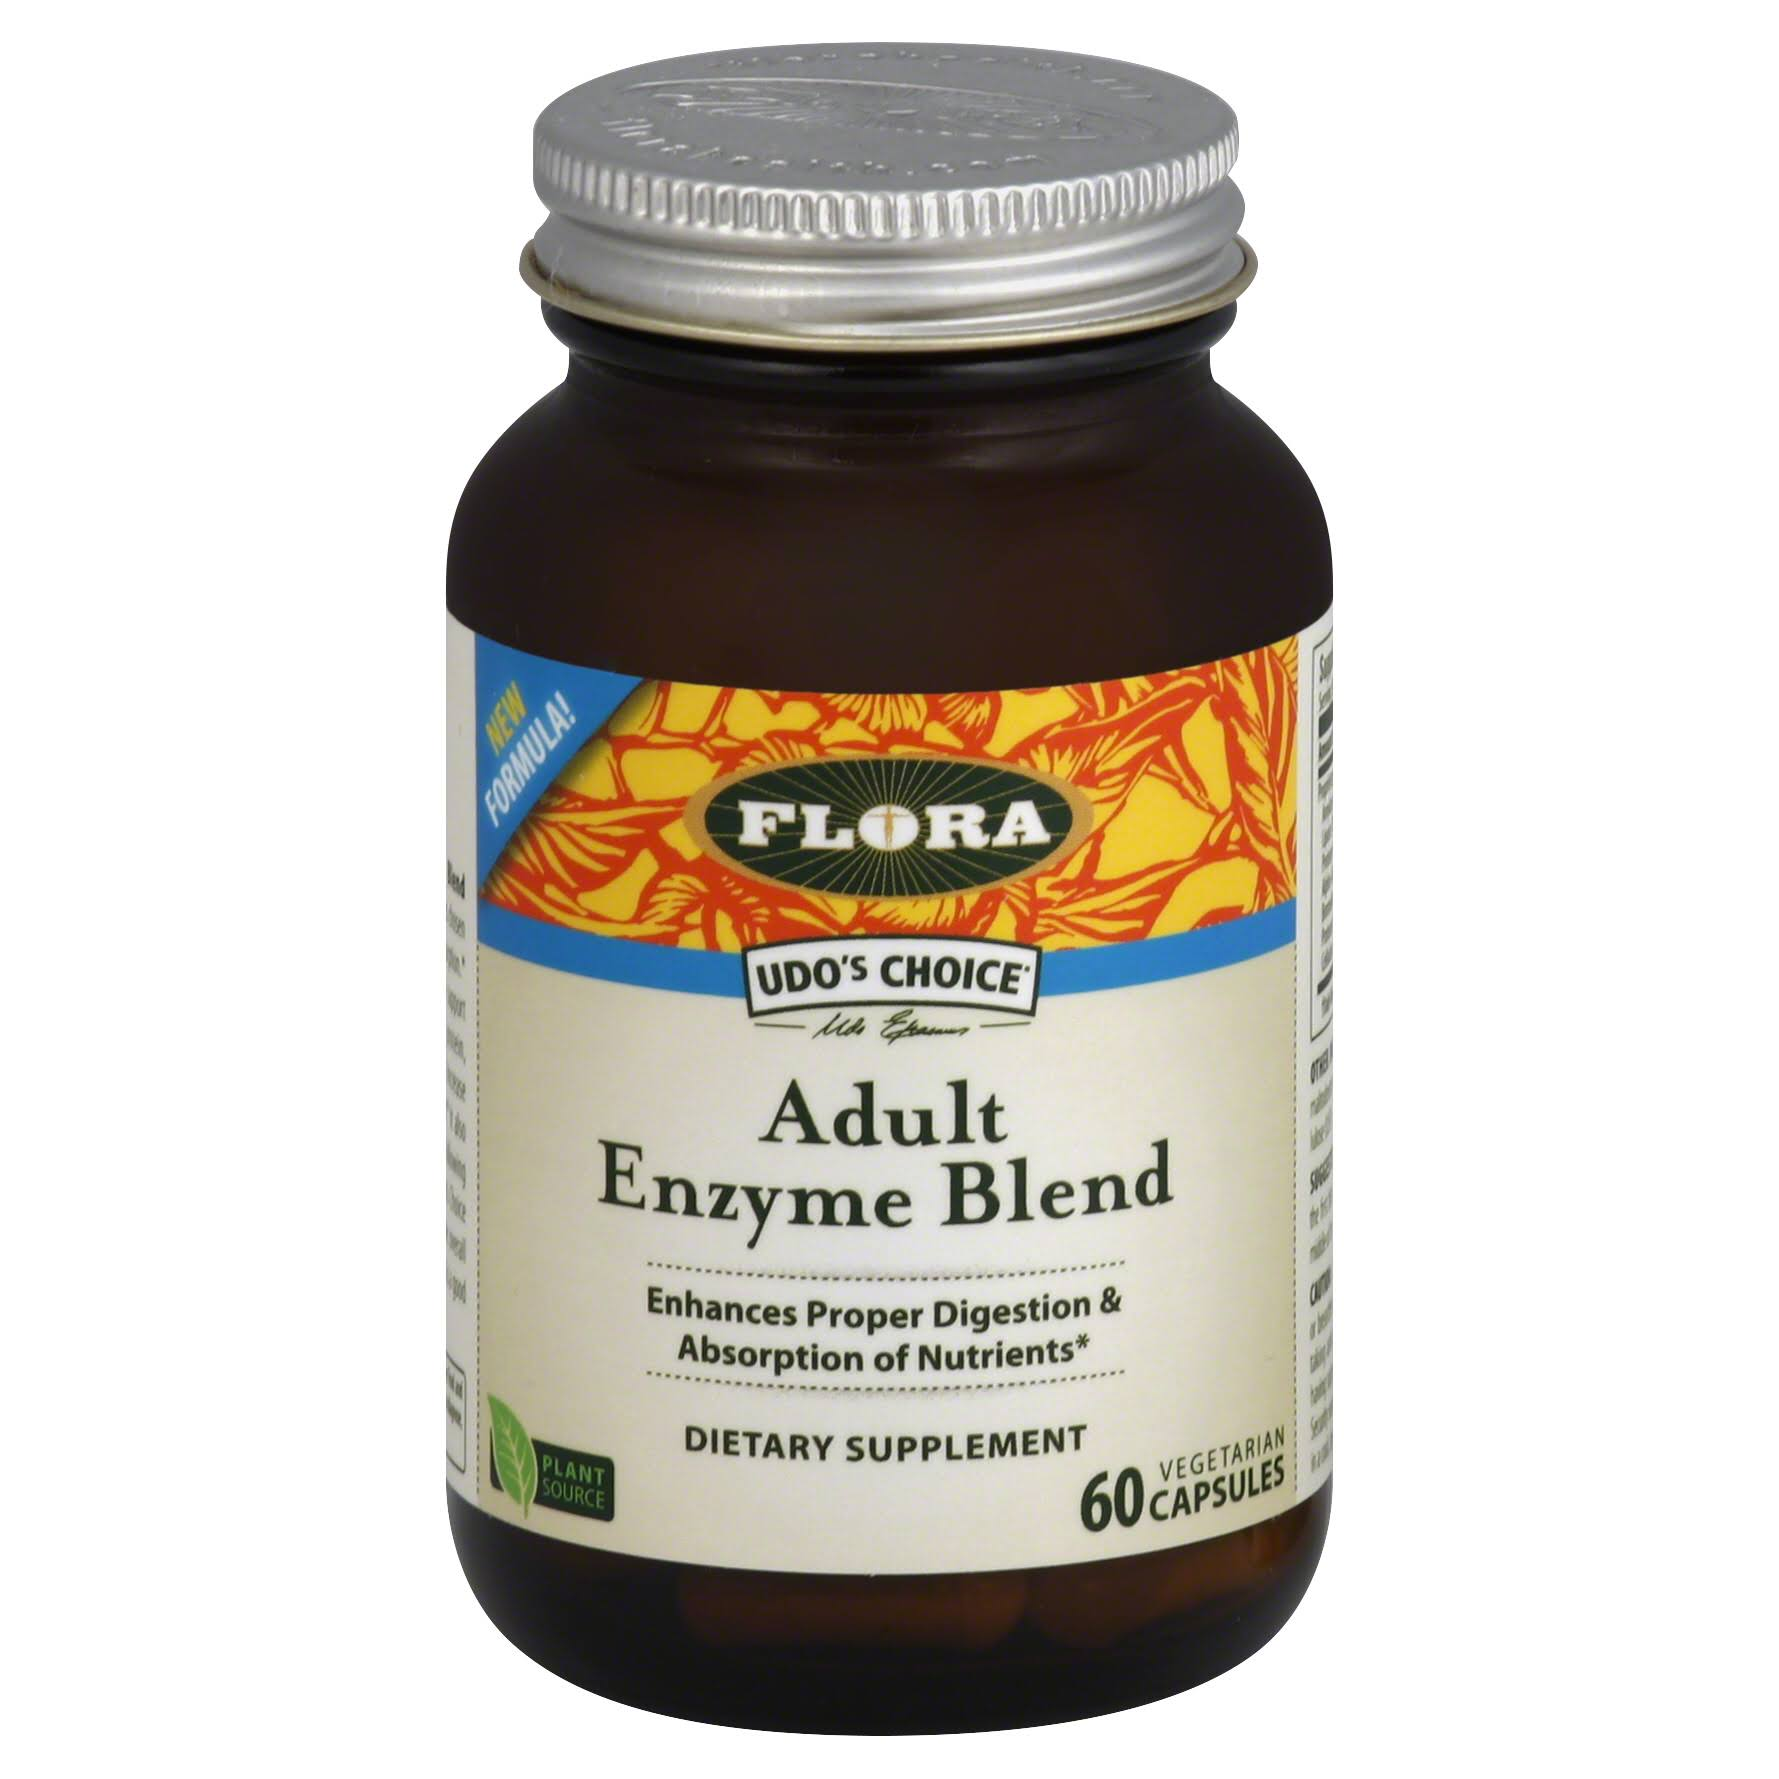 Flora Udo's Choice Enzyme Blend Adult Supplement - 60 Vegetarian Capsules